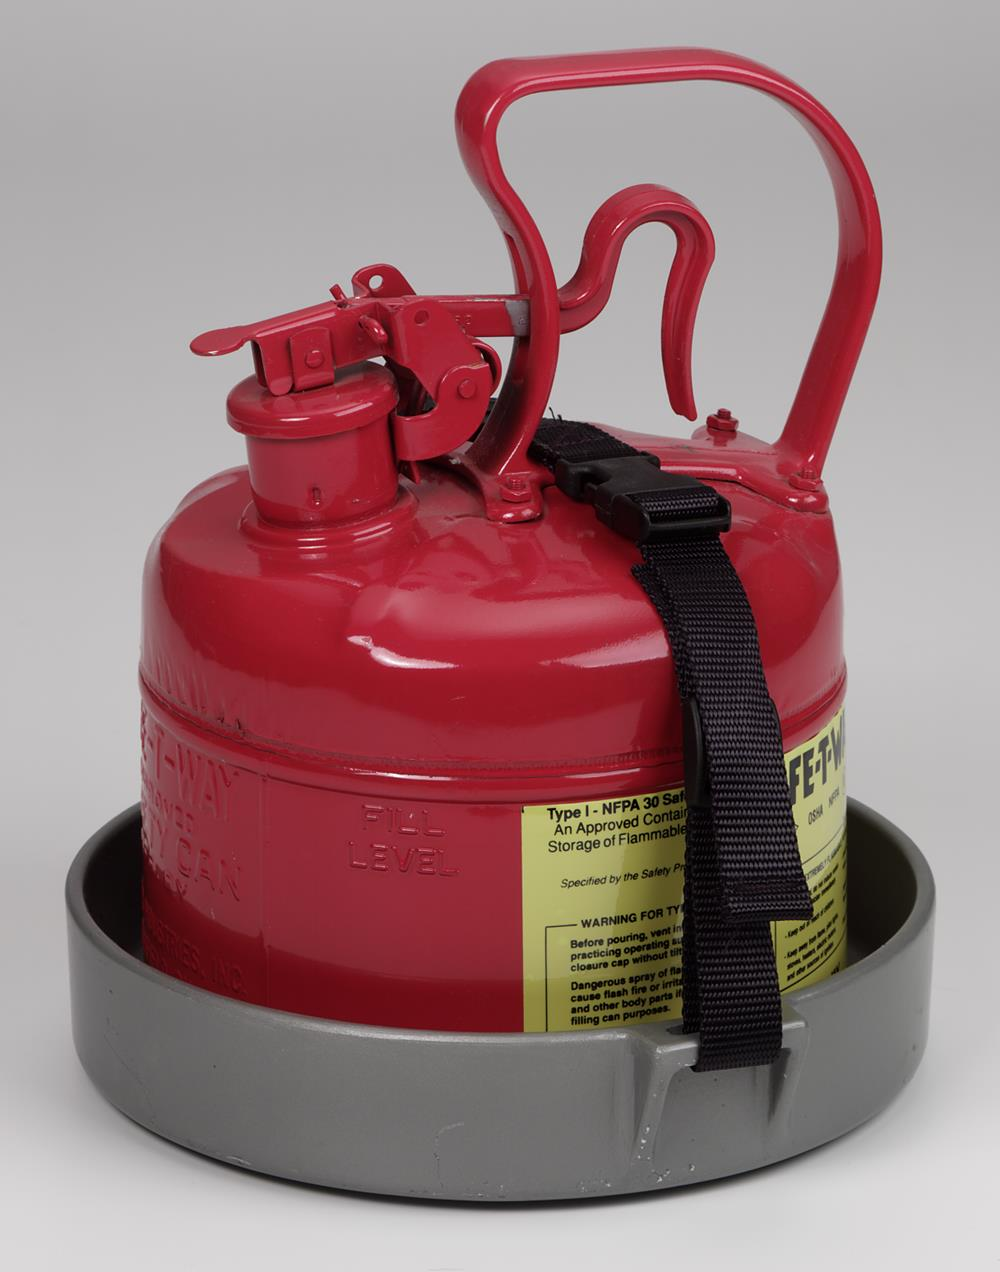 Round Holder for 1 or 2-Gallon Safety Can